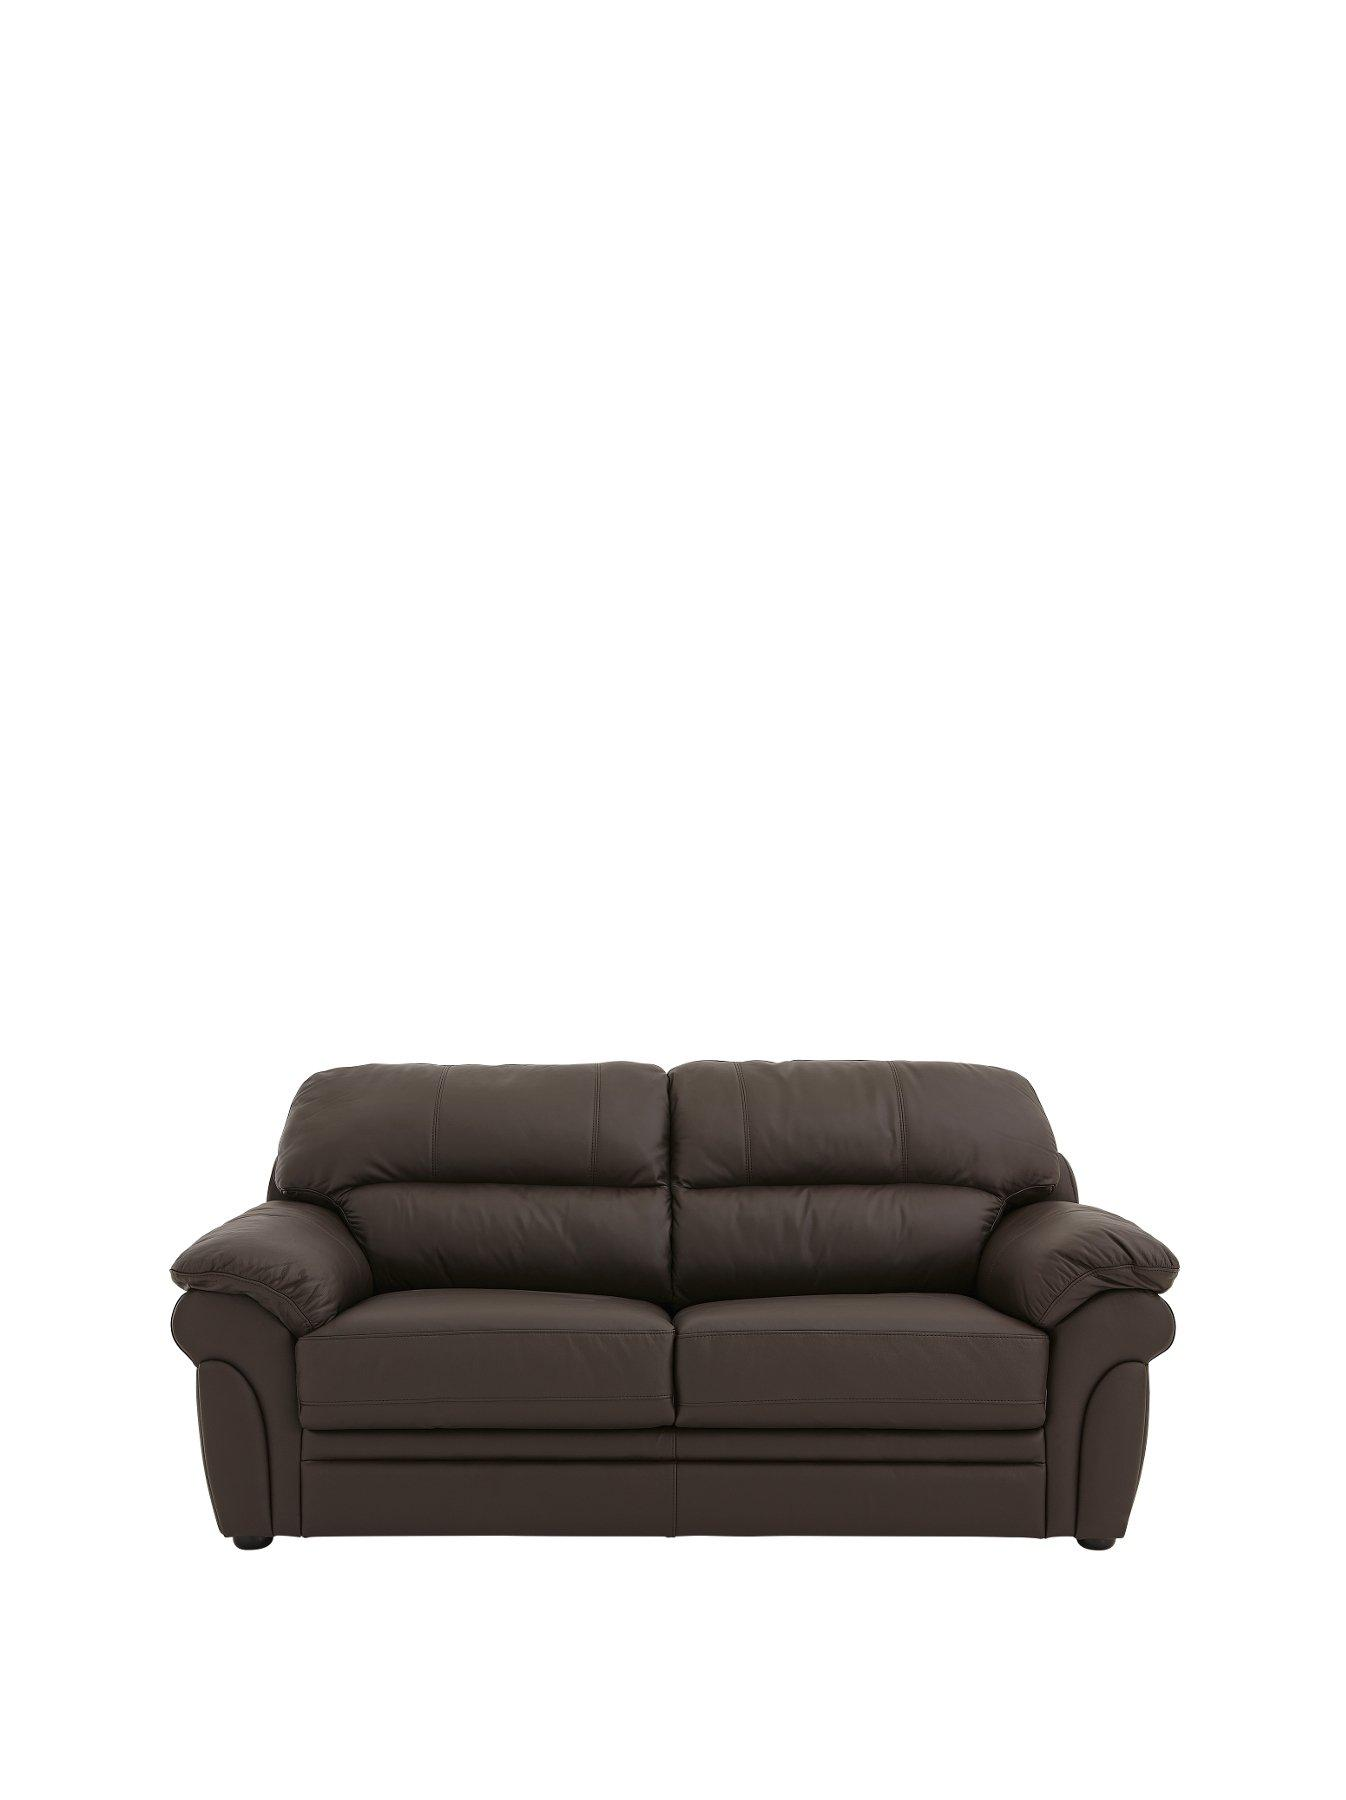 portland leather sofa bed